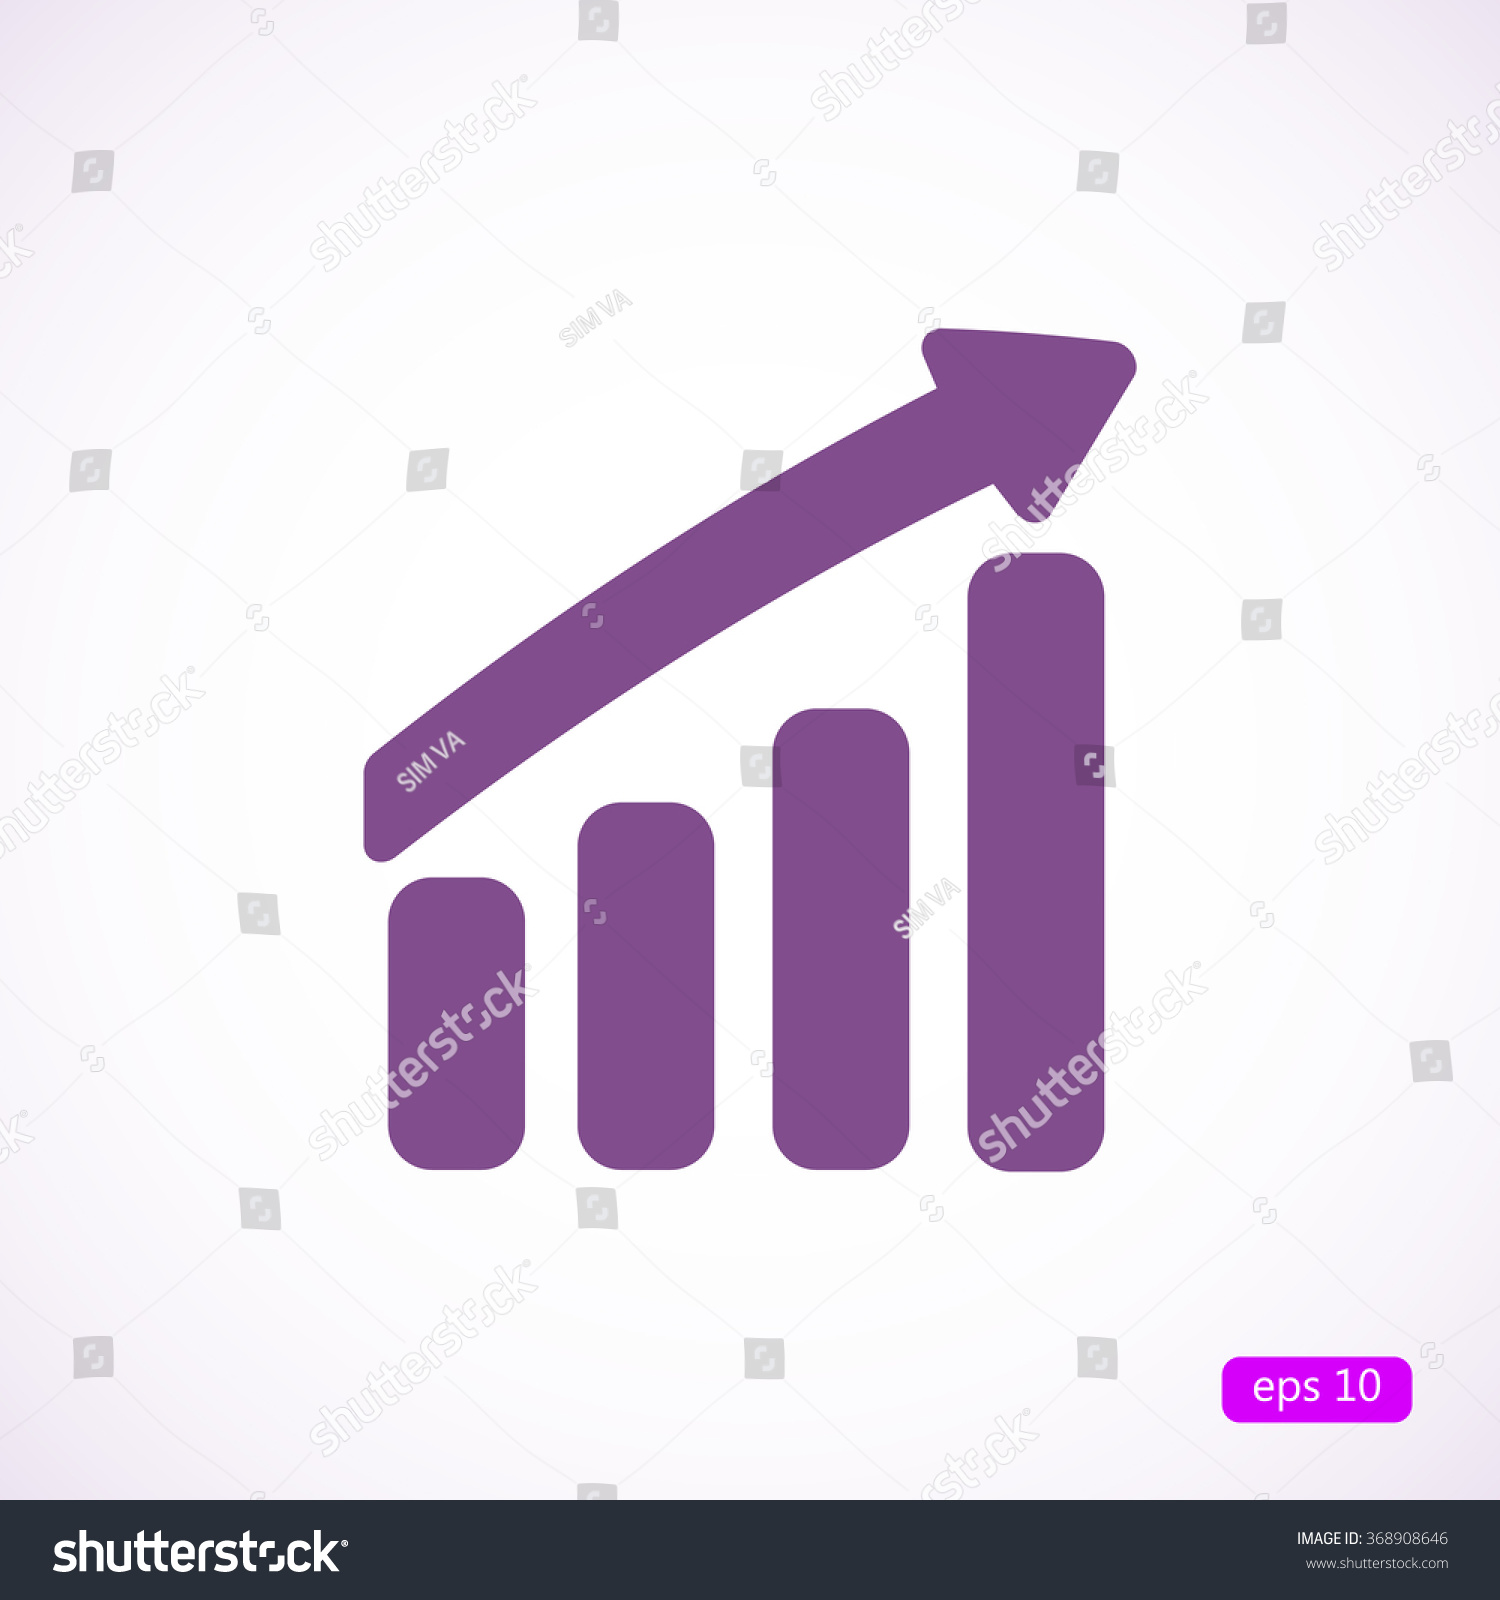 bar chart arrow icon stock vector (royalty free) 368908646